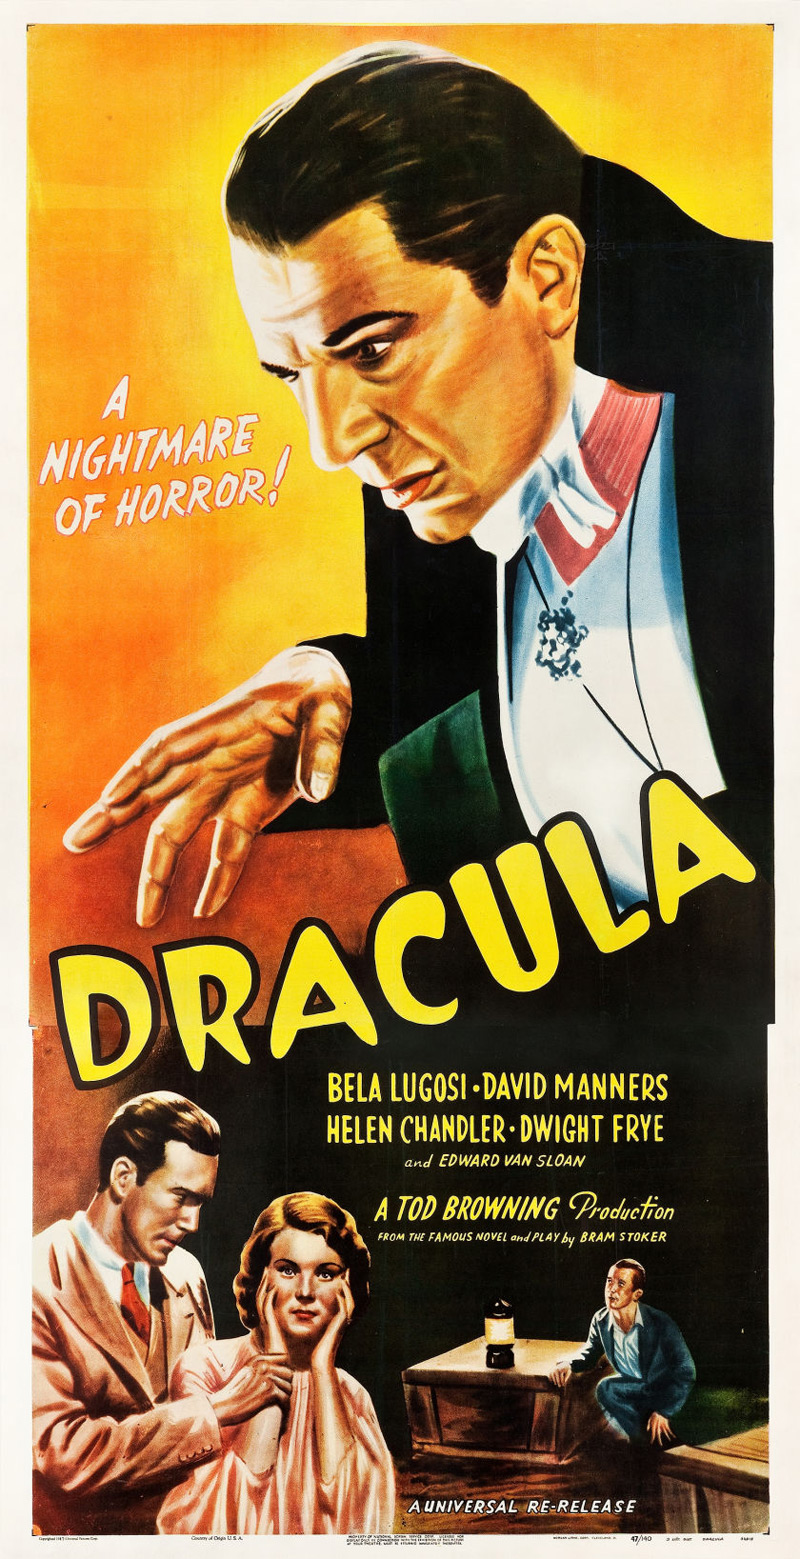 Rare Dracula Three Sheet Movie Poster Could Fetch 40 000